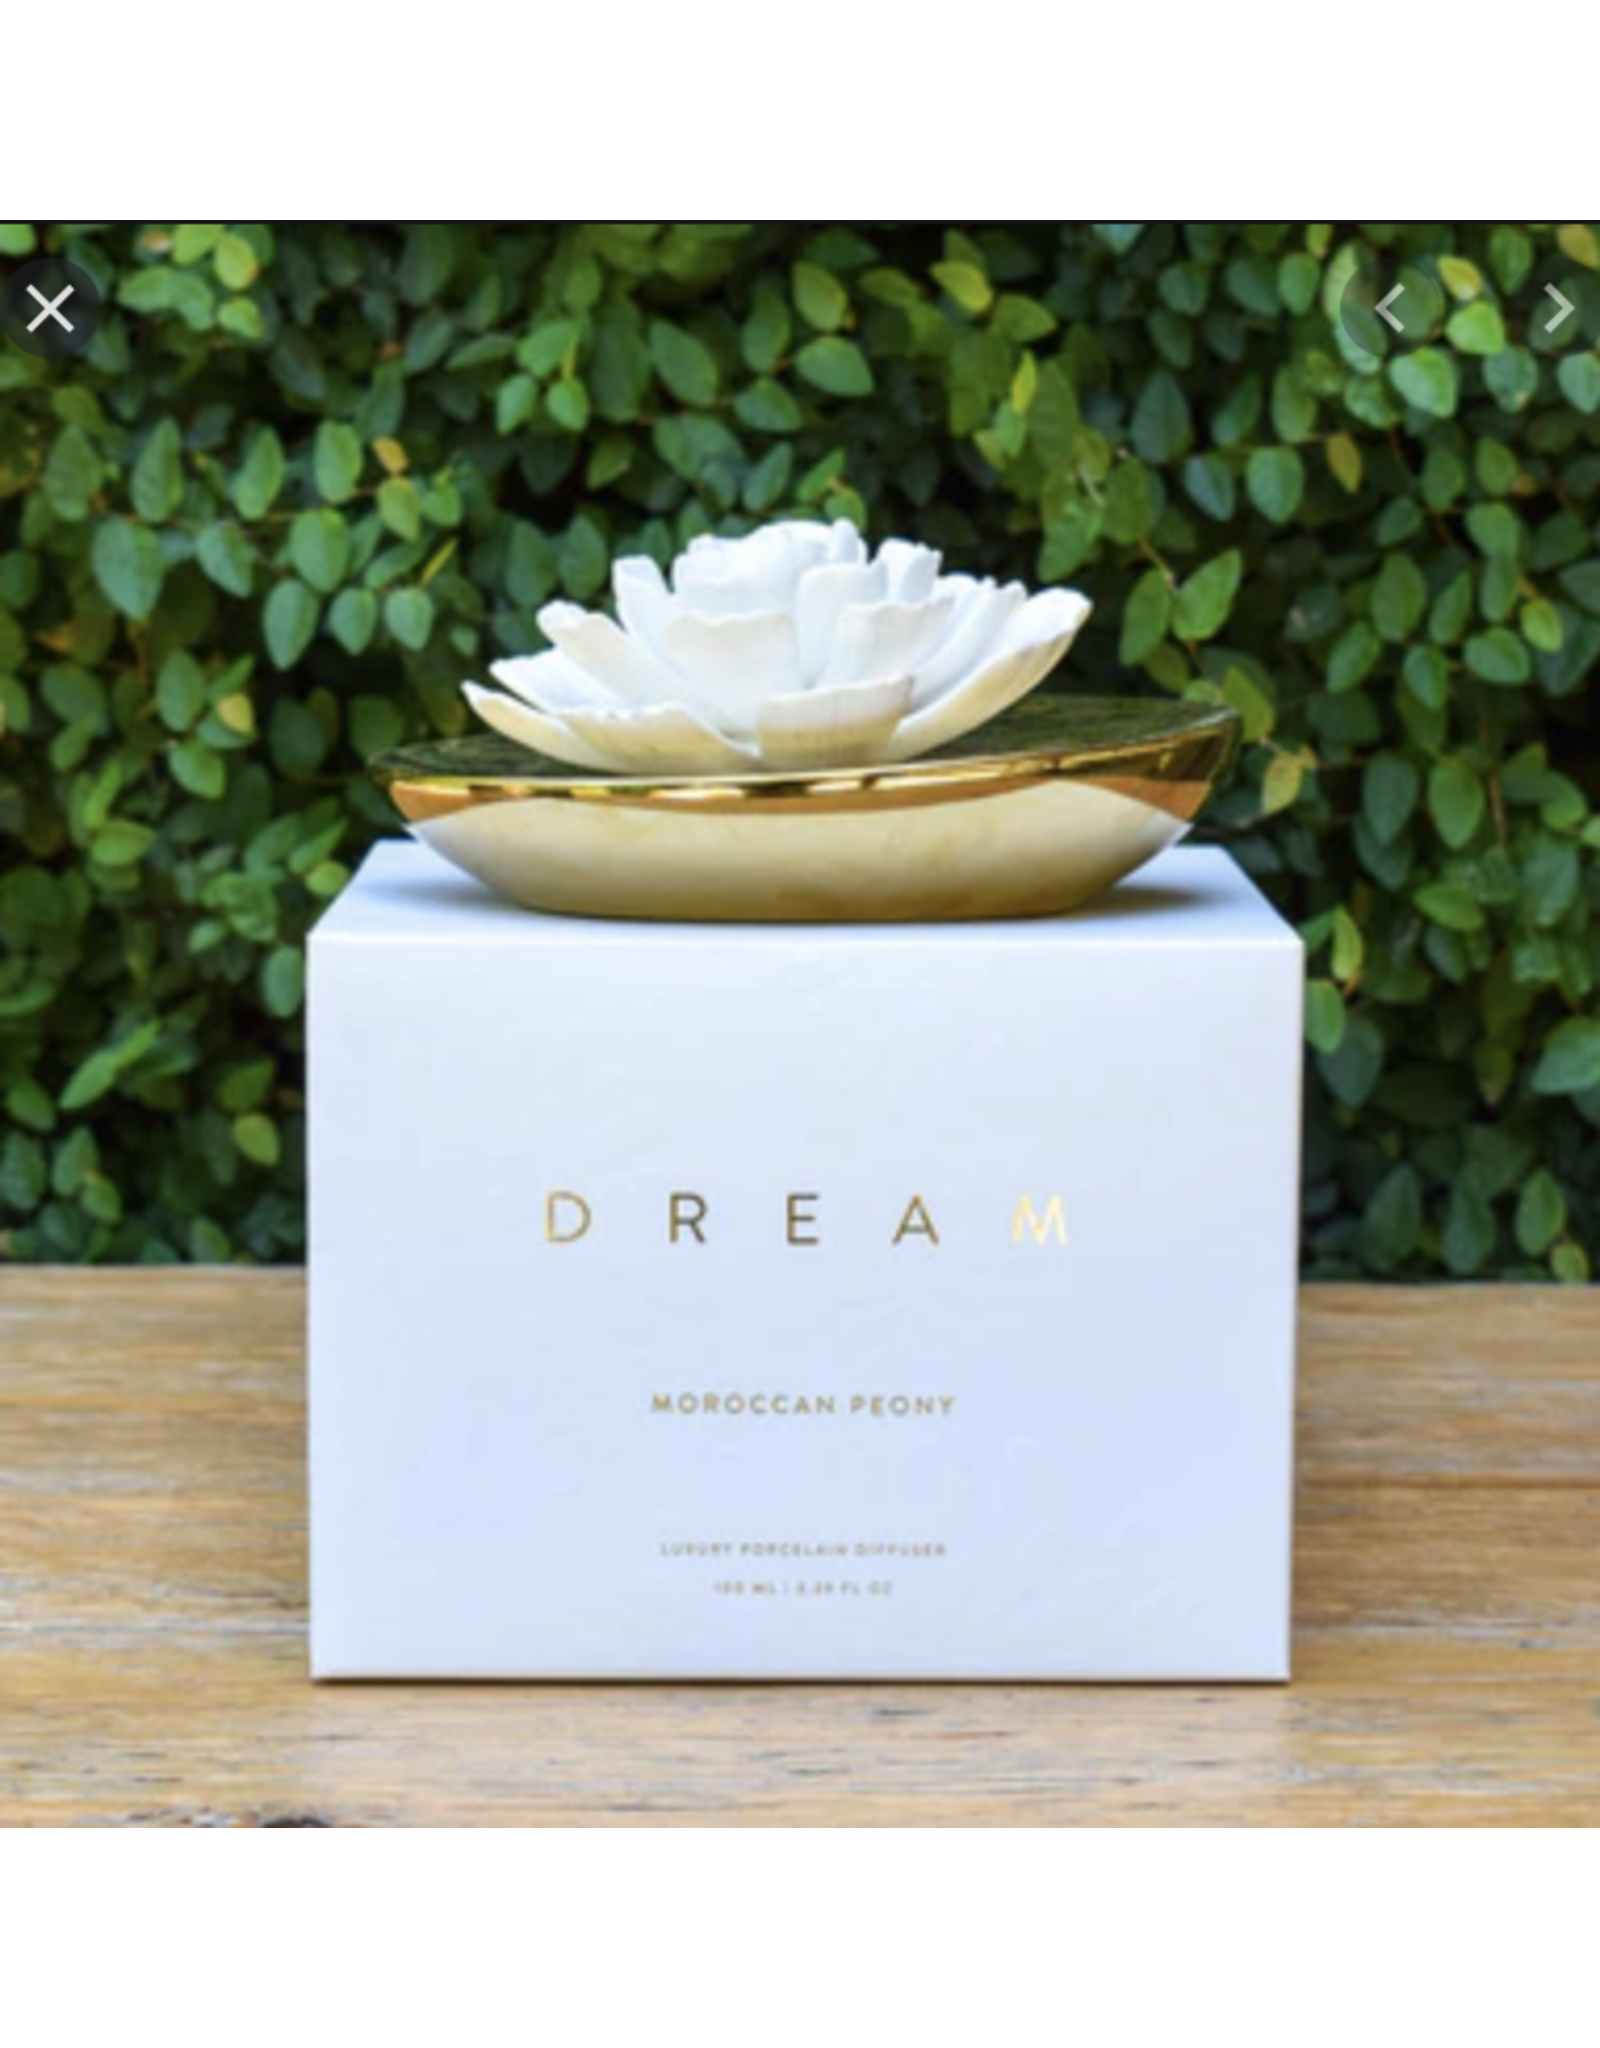 Dream Porcelain Flower Diffuser - Moroccan Peony